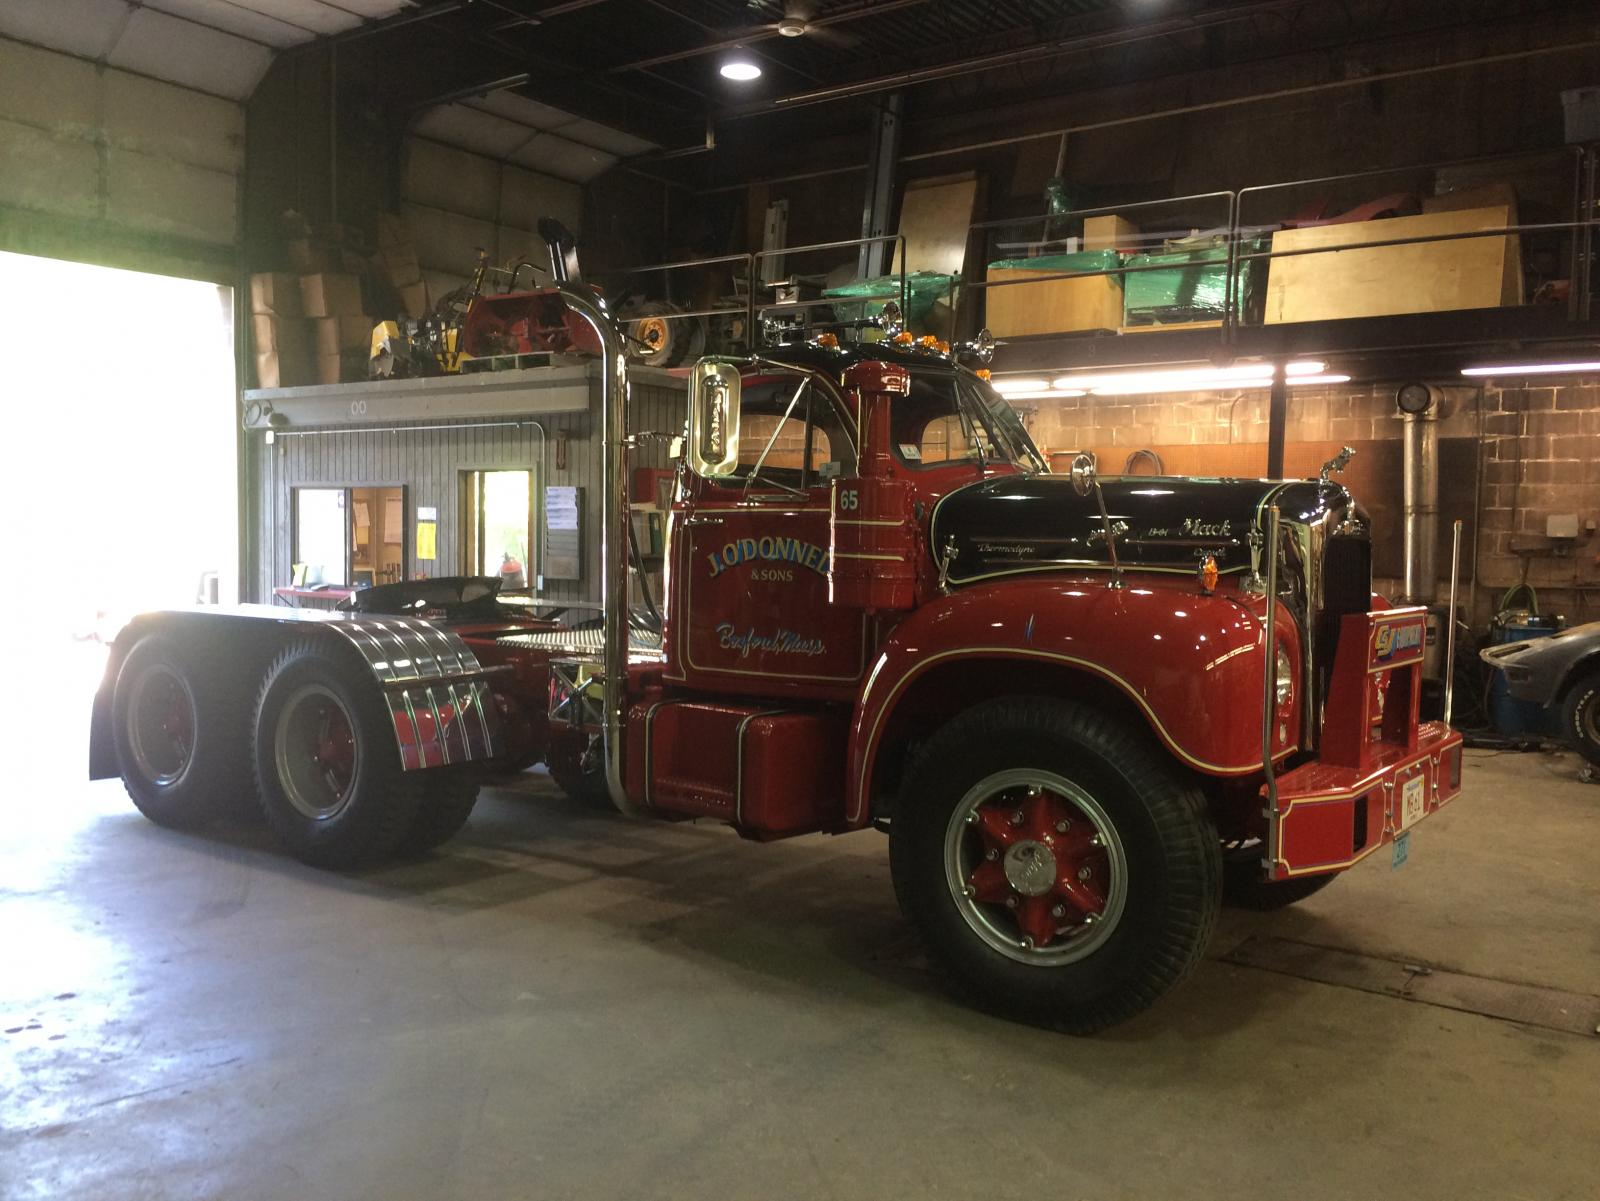 Old school truck lettering - Page 2 - Antique and Classic Mack Trucks General Discussion ...